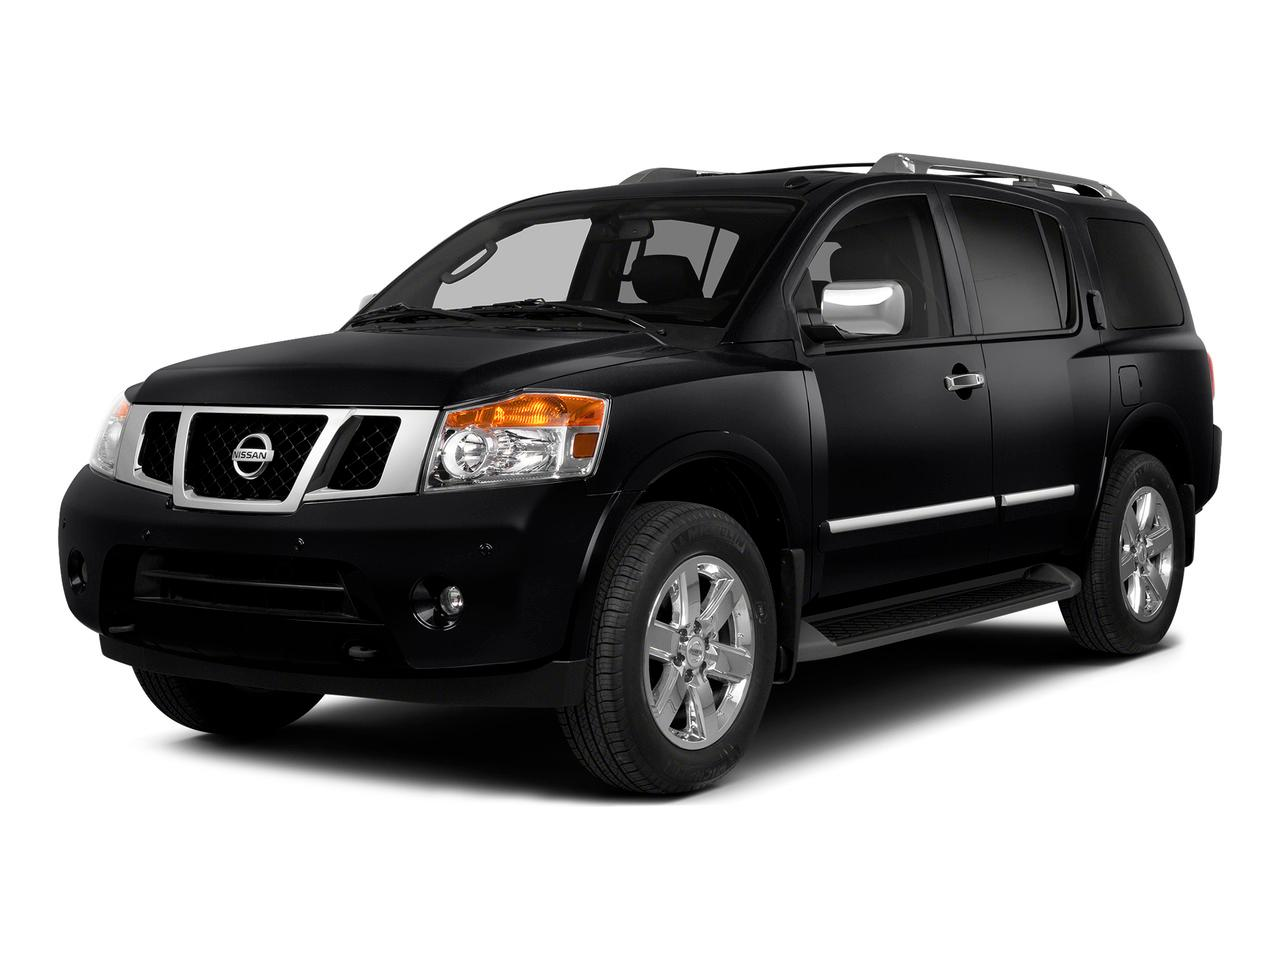 2015 Nissan Armada Vehicle Photo in Fishers, IN 46038